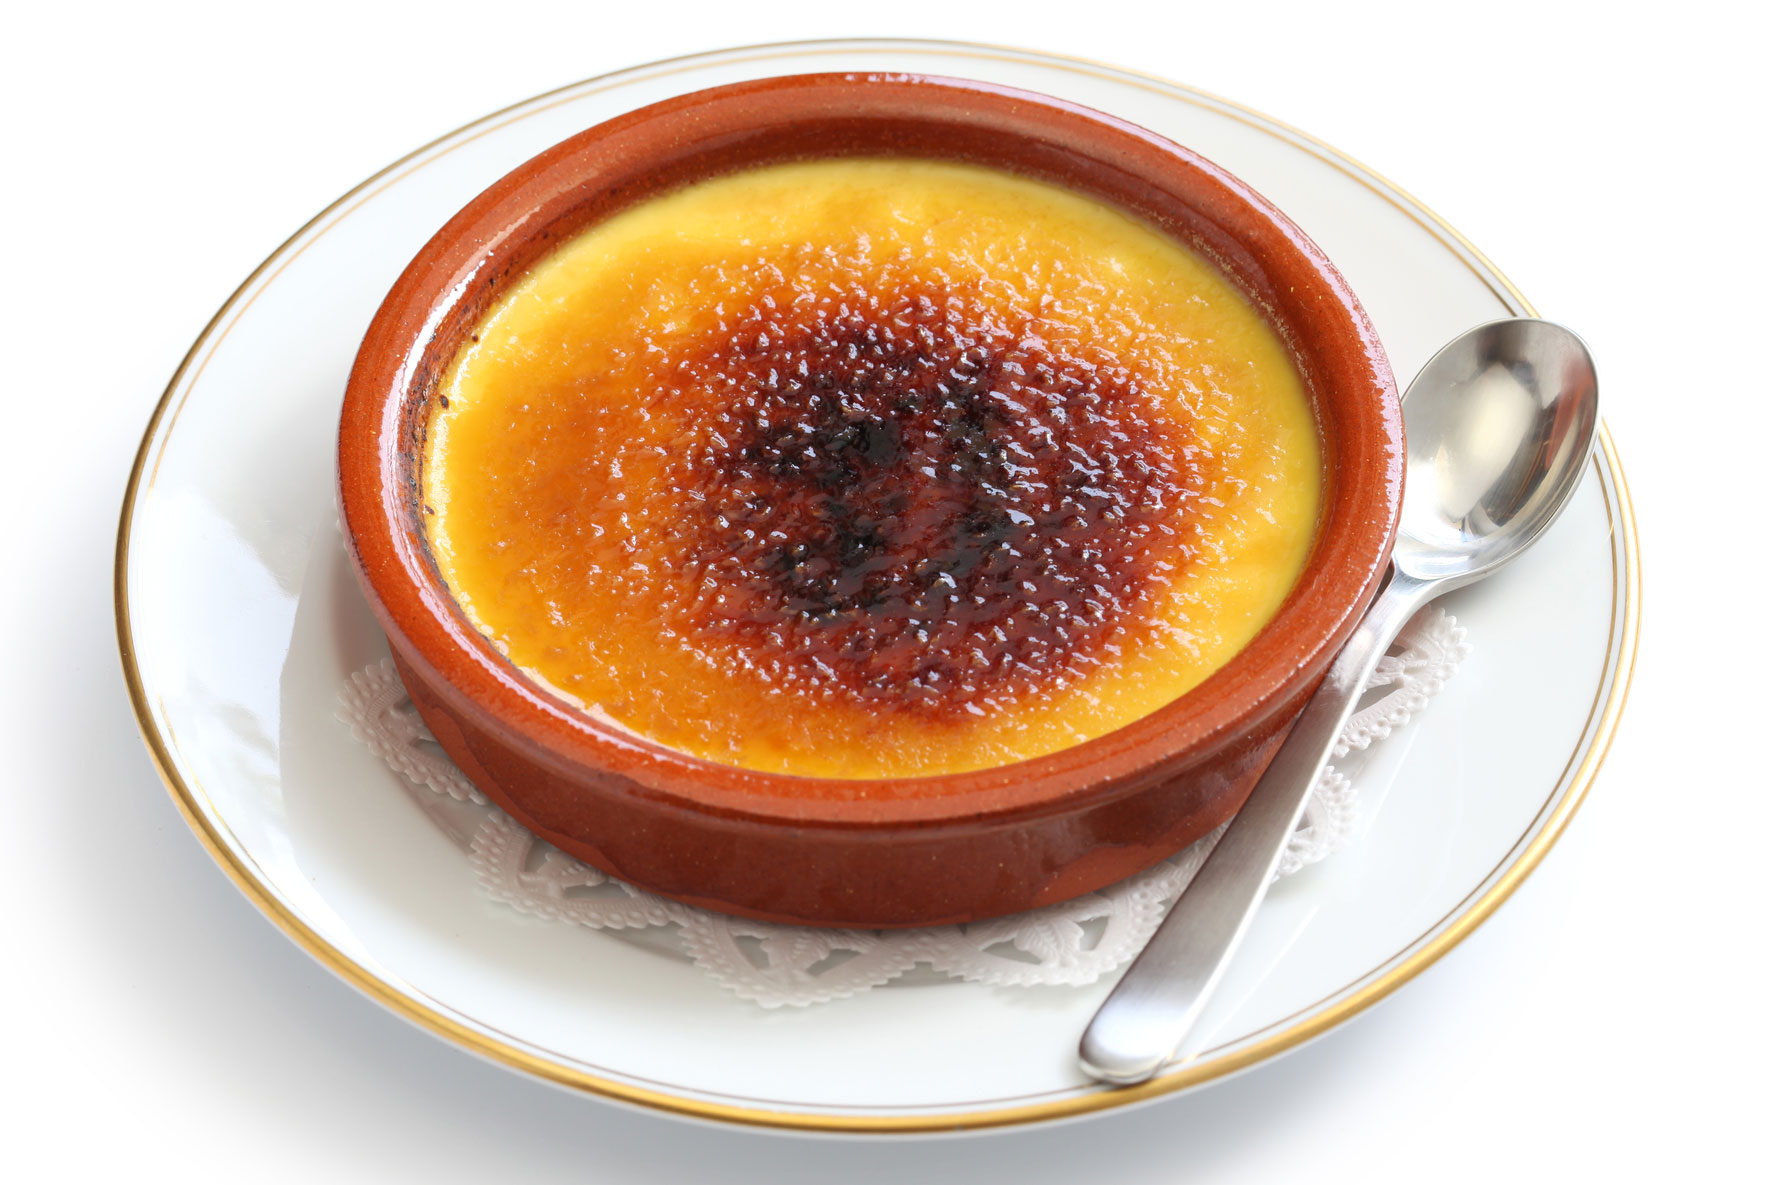 It is possible to make Creme Brullee in your campervan, try my easy recipe